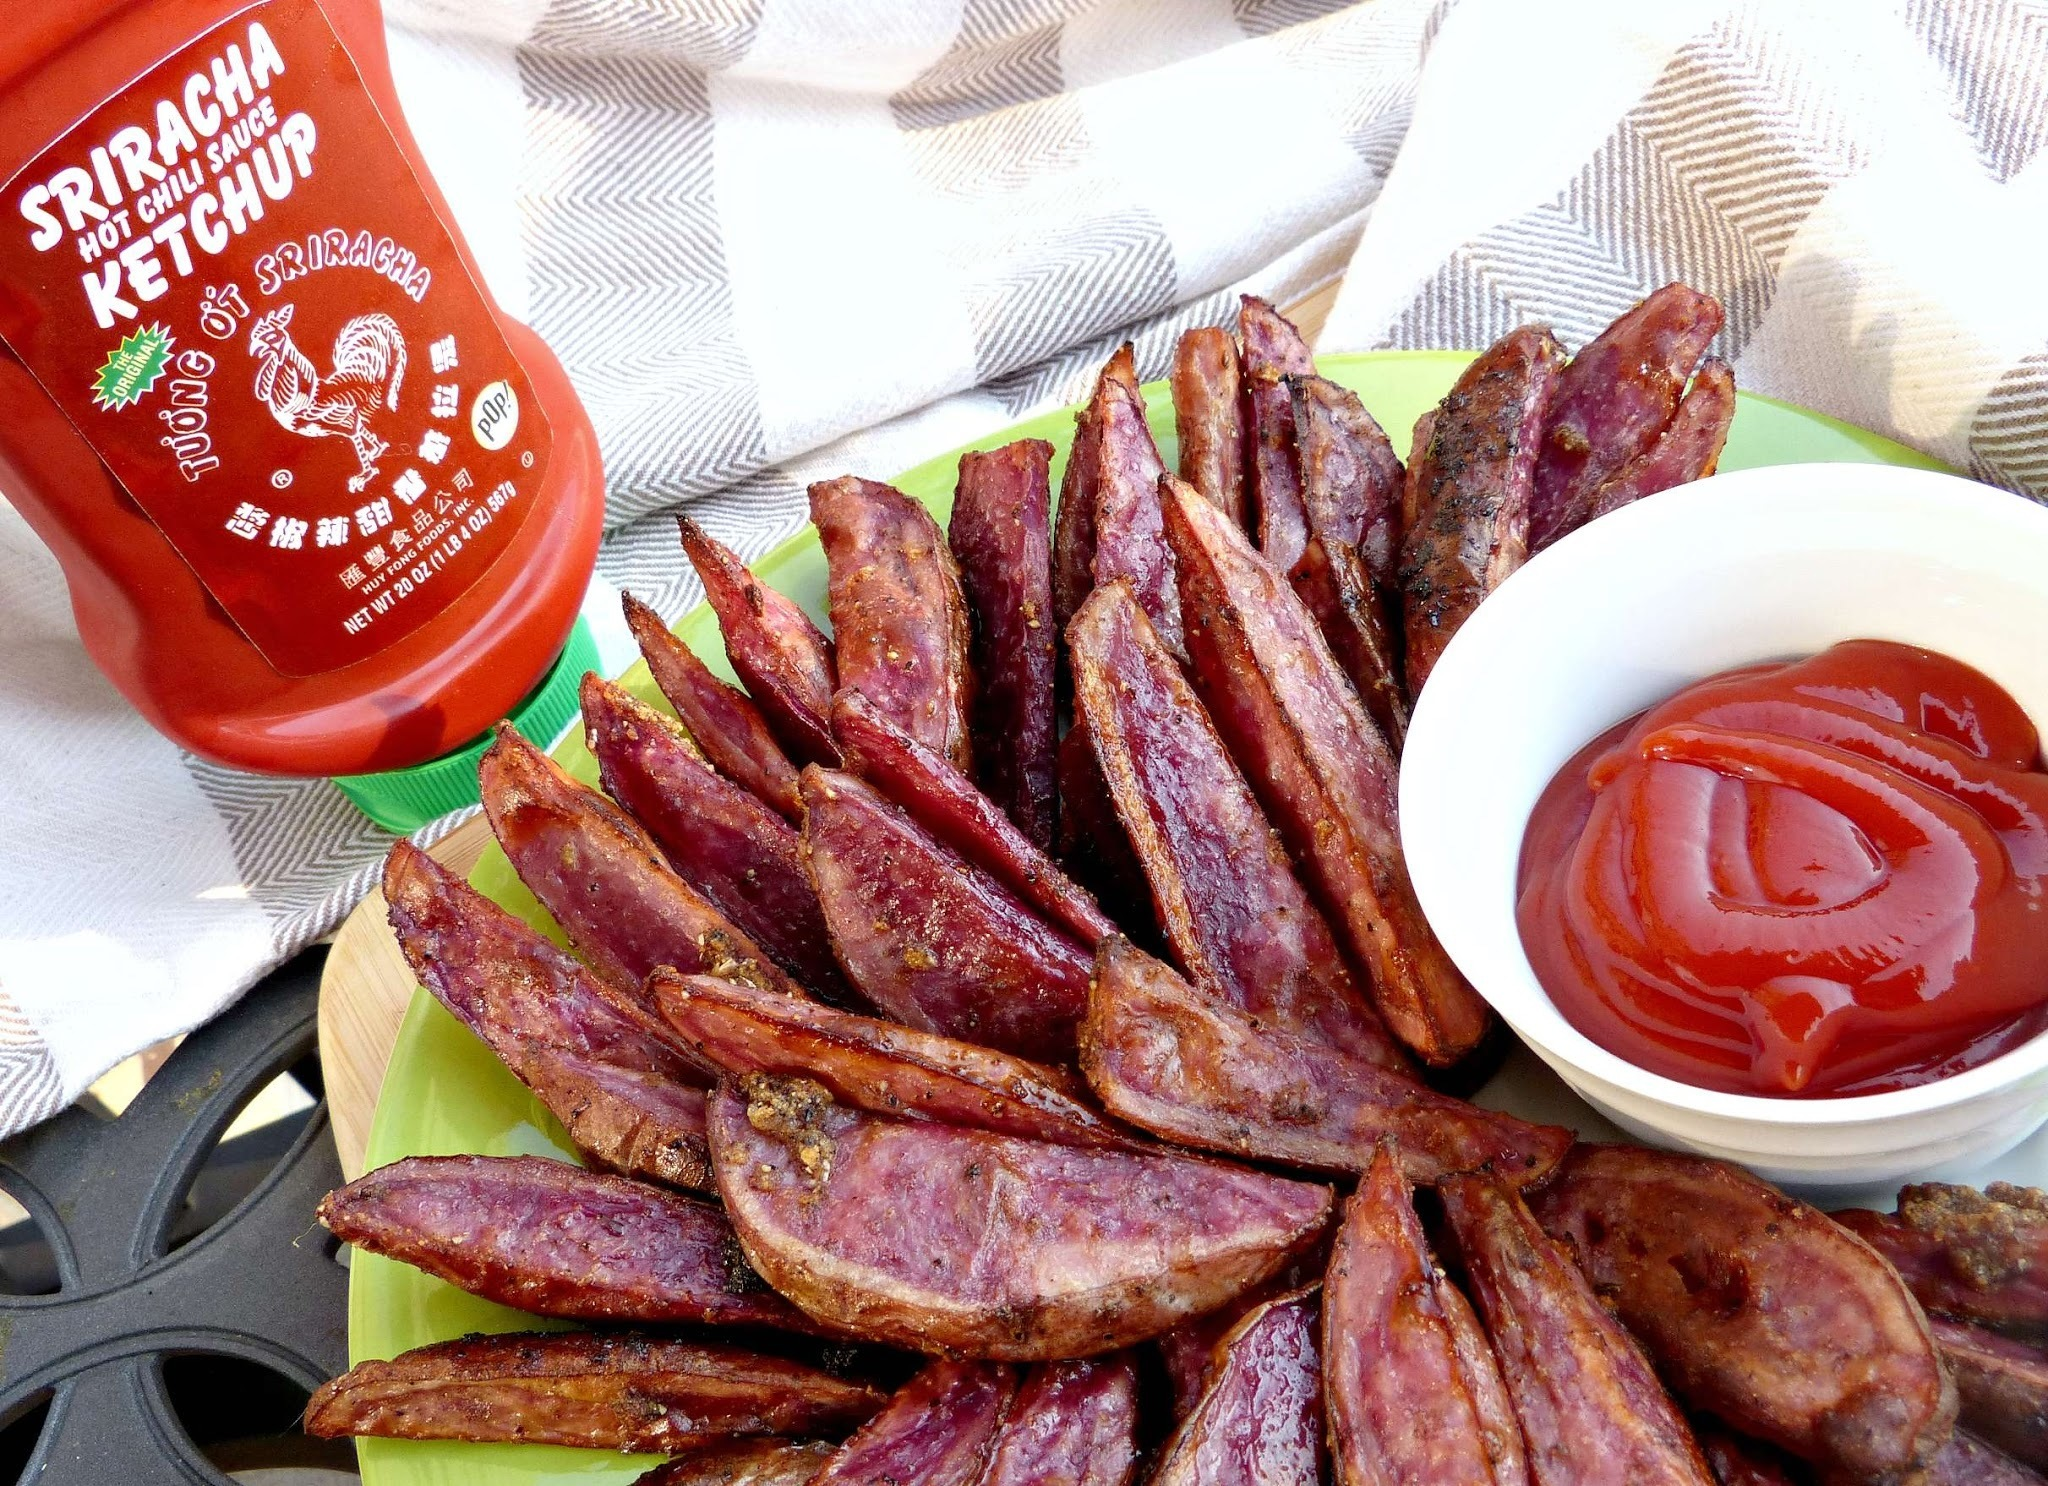 Baked Chinese Five Spice Fries with Sriracha Ketchup